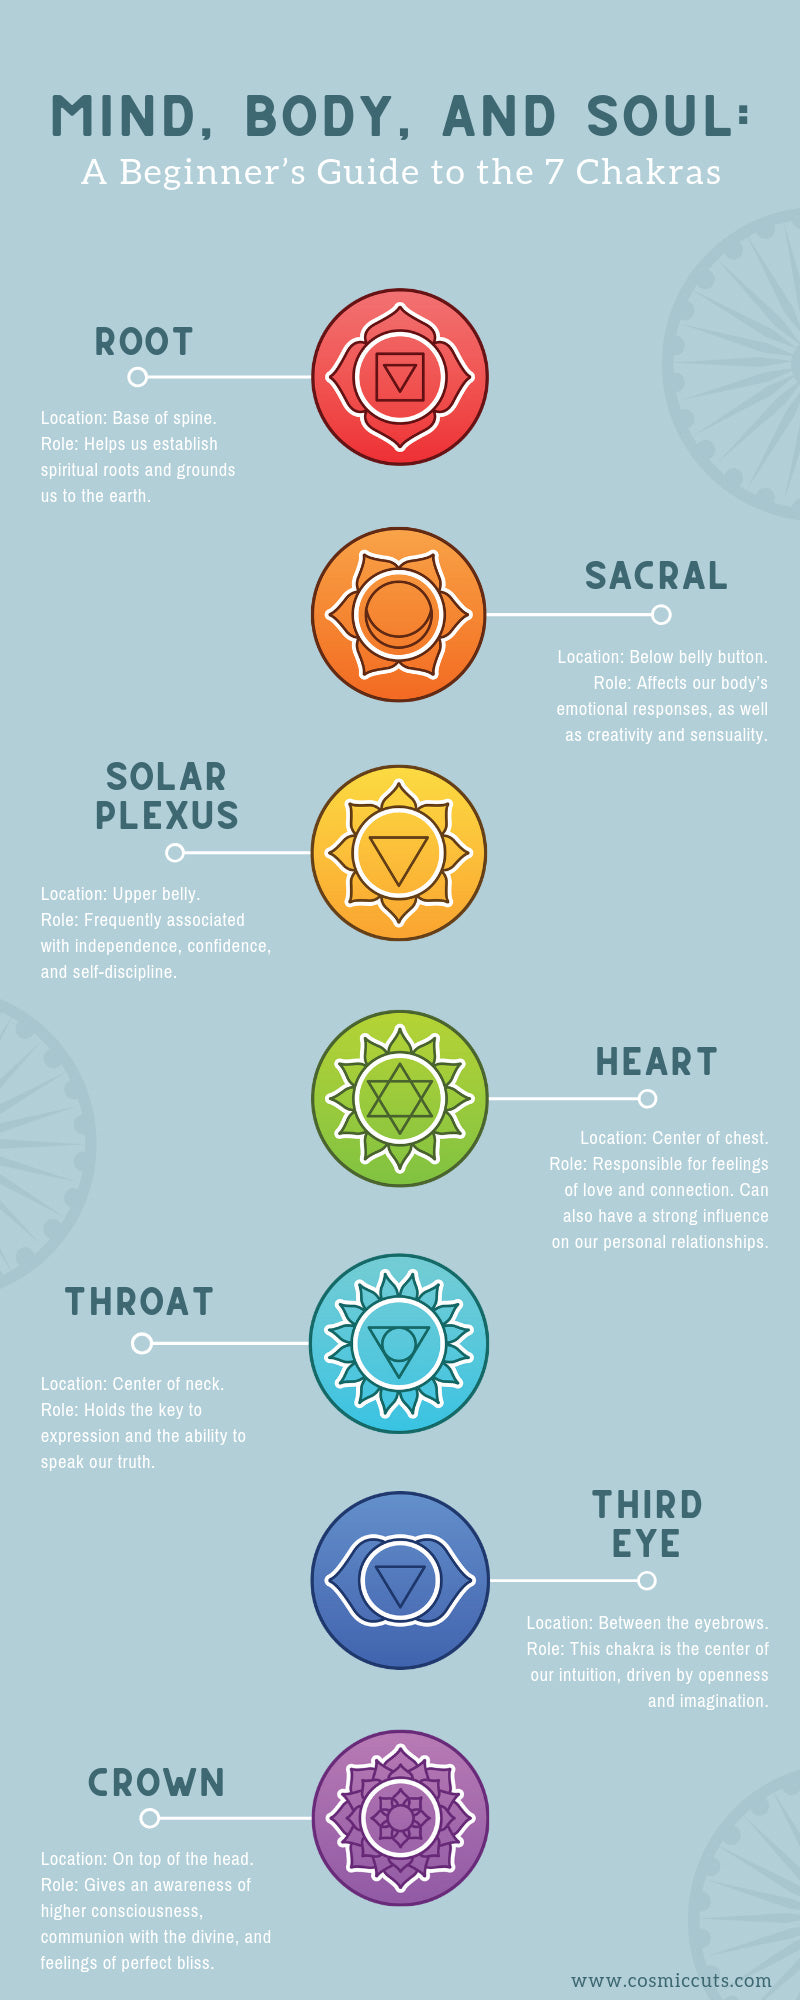 Mind, Body, and Soul: A Beginner's Guide to the 7 Chakras